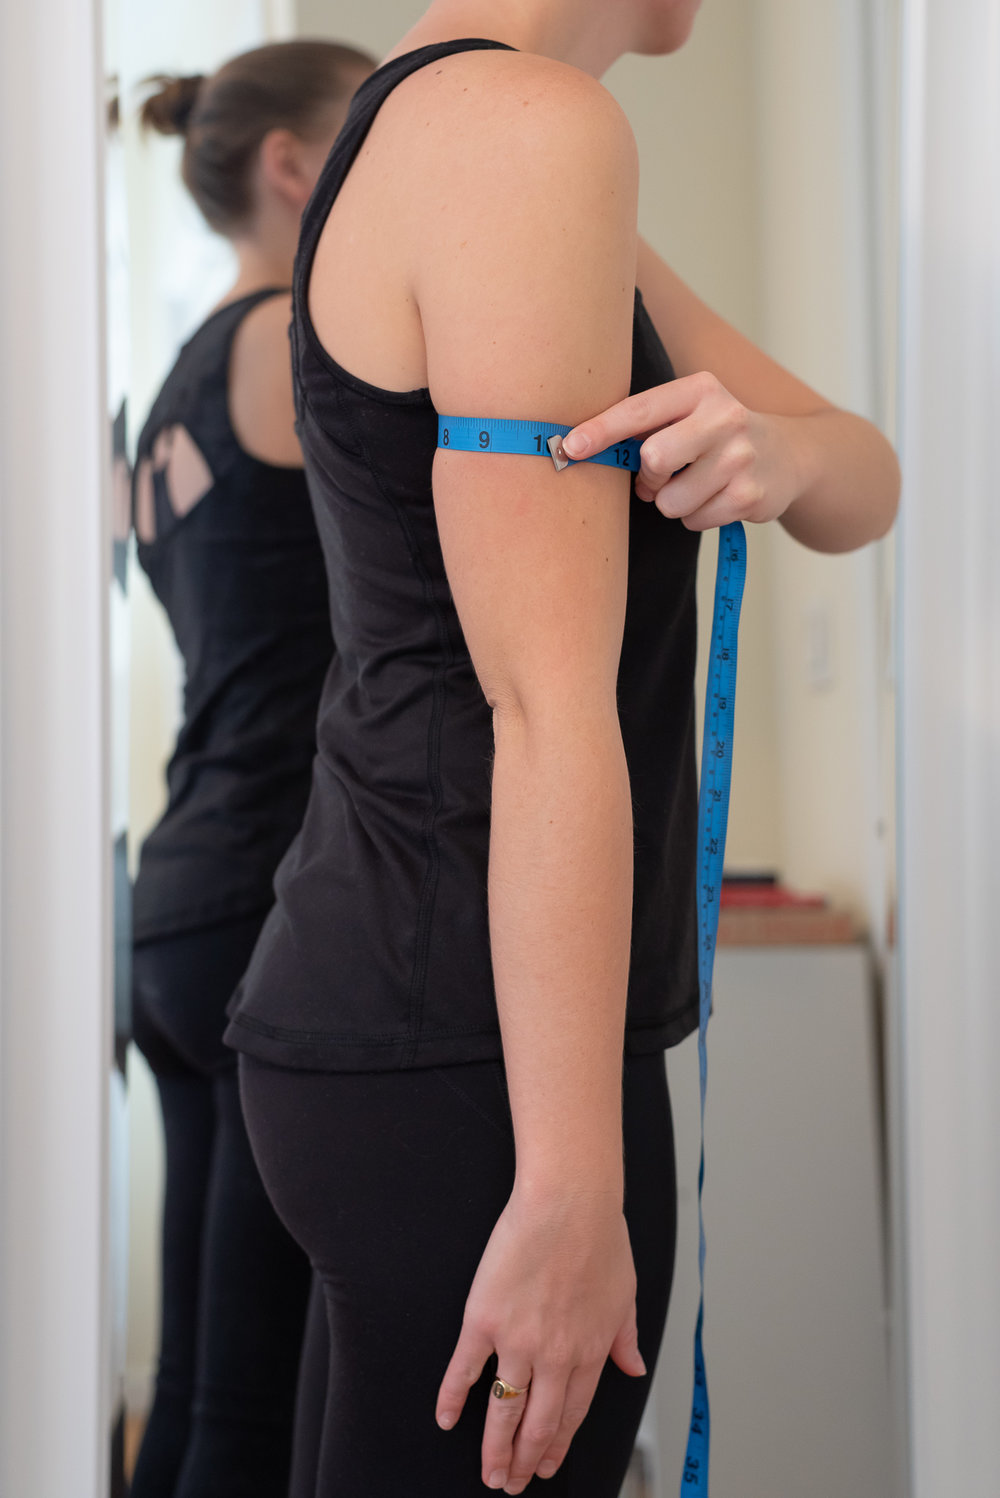 How to take your bicep or arm measurement